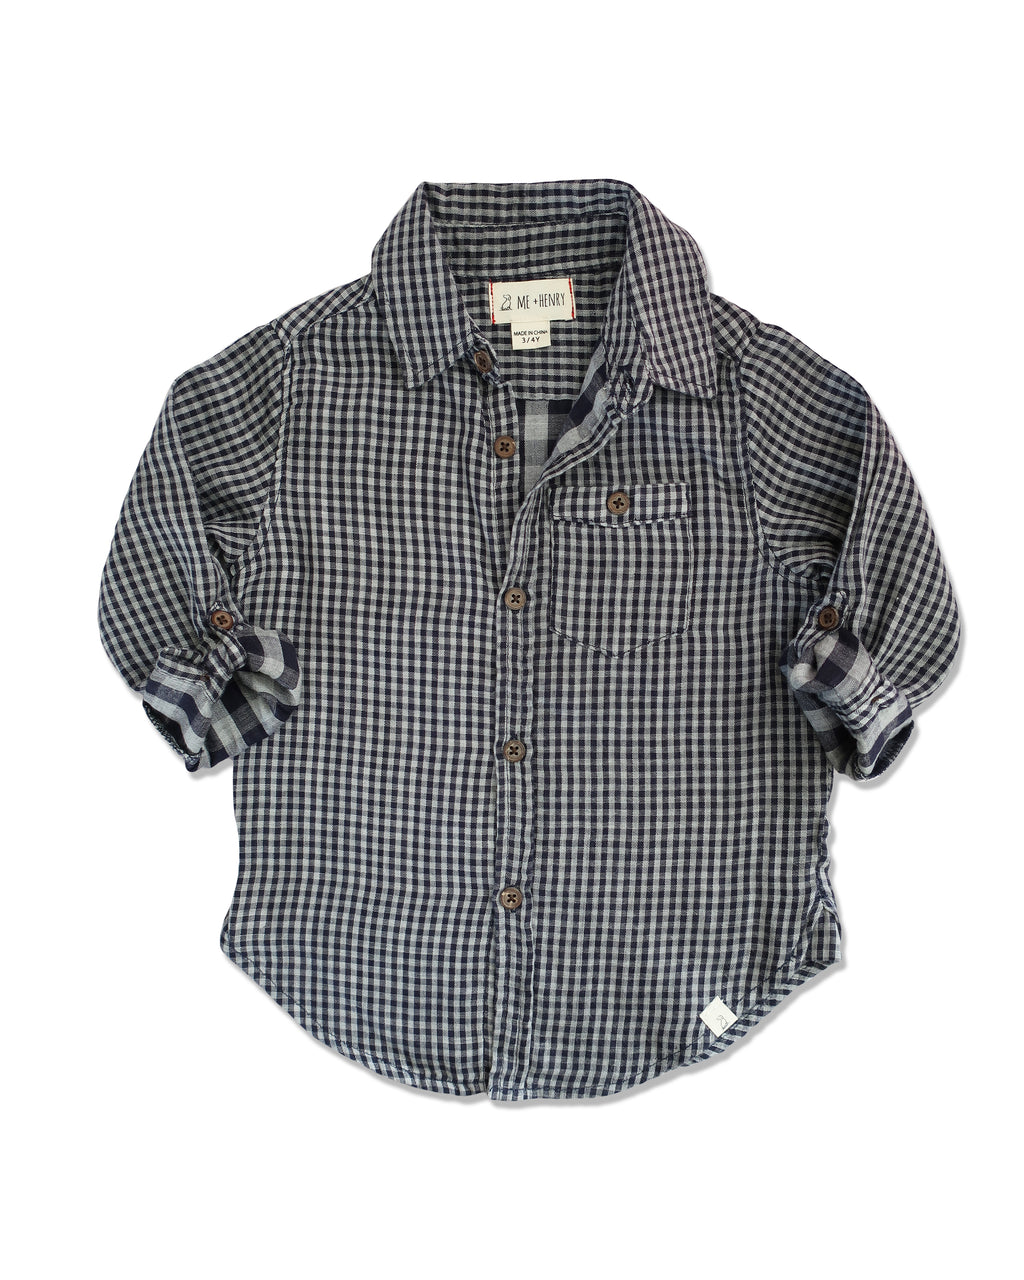 front image of boys cotton navy plaid shirt with sleeves rolled up